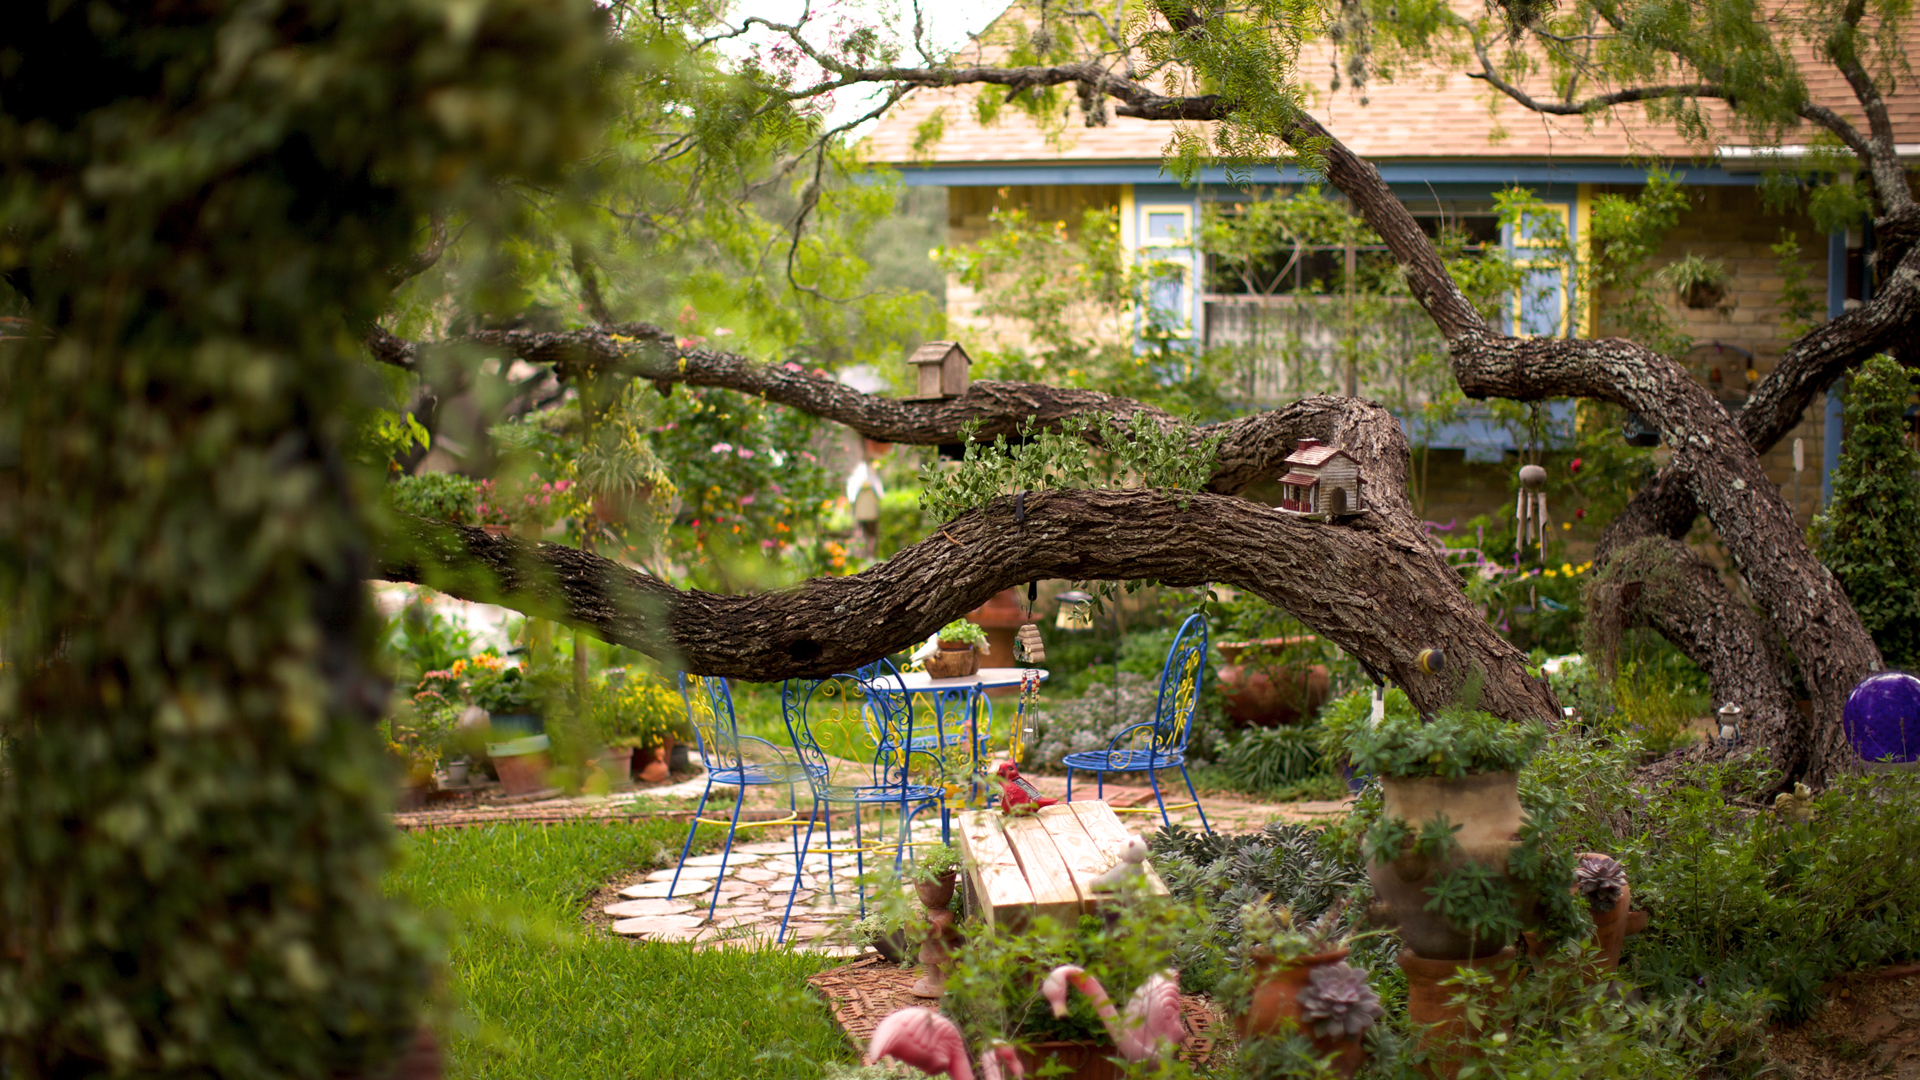 Comfortable outdoor spaces for people and wildlife